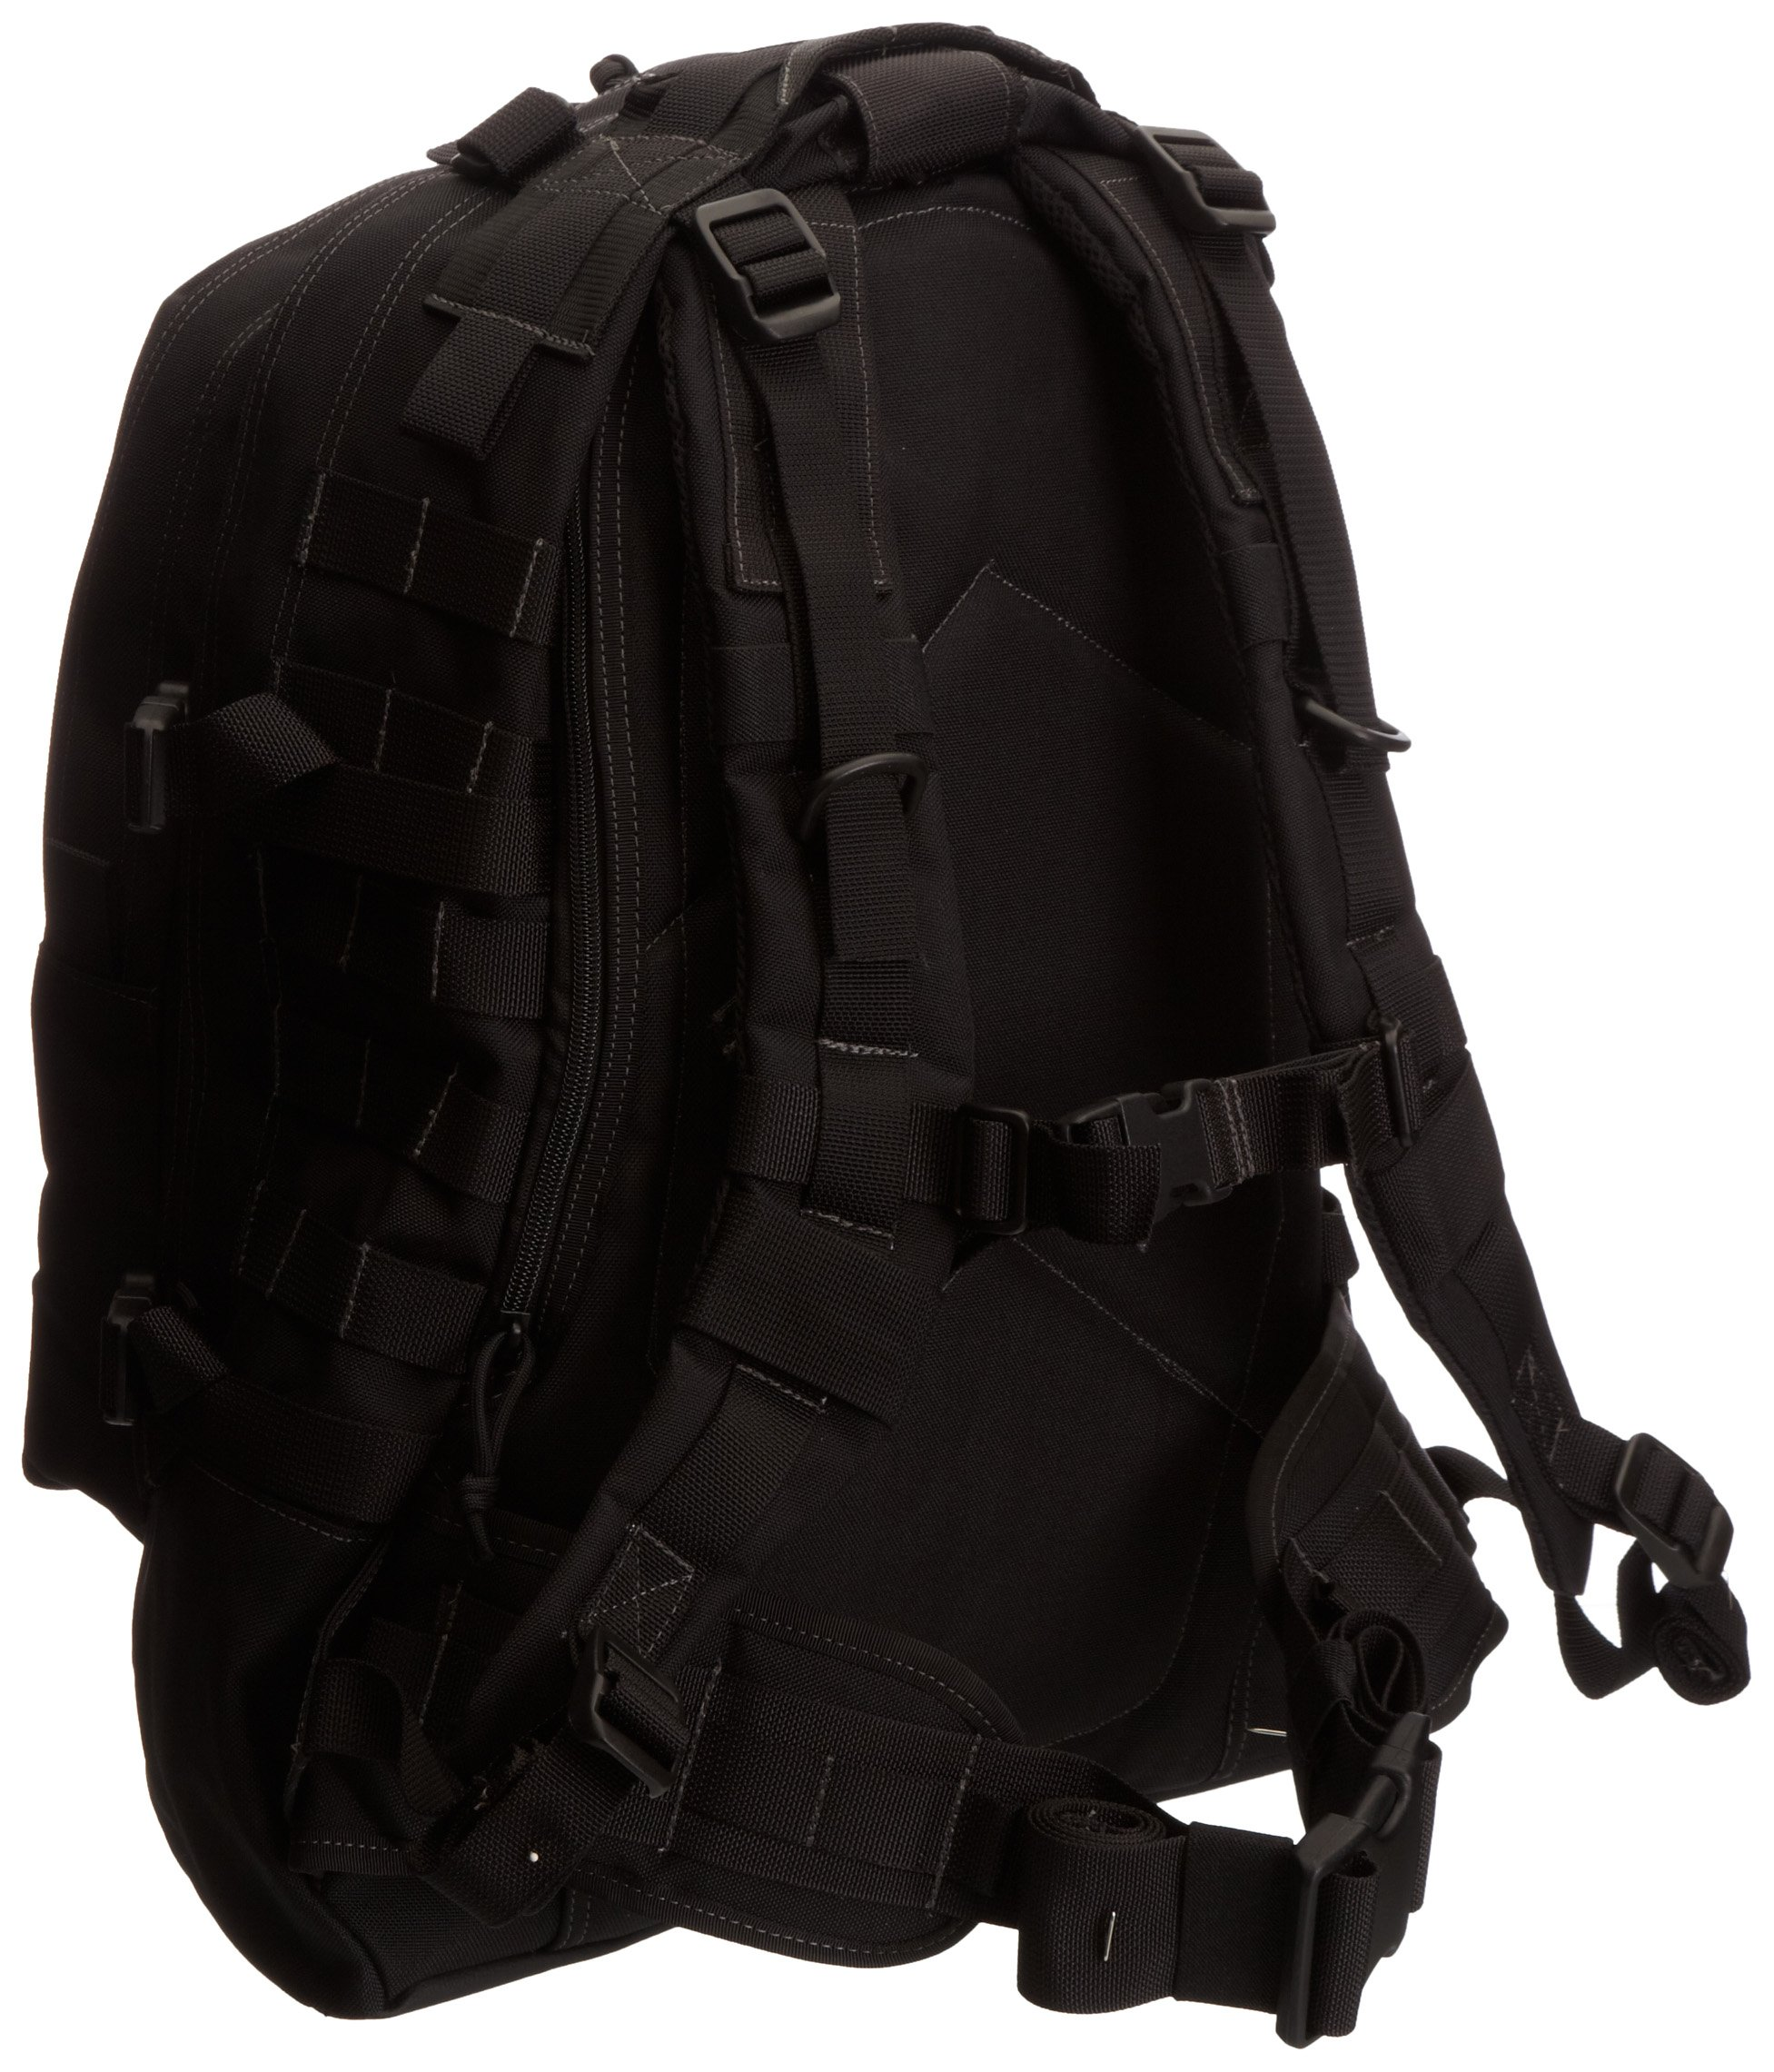 Maxpedition Vulture-II Backpack (Black)